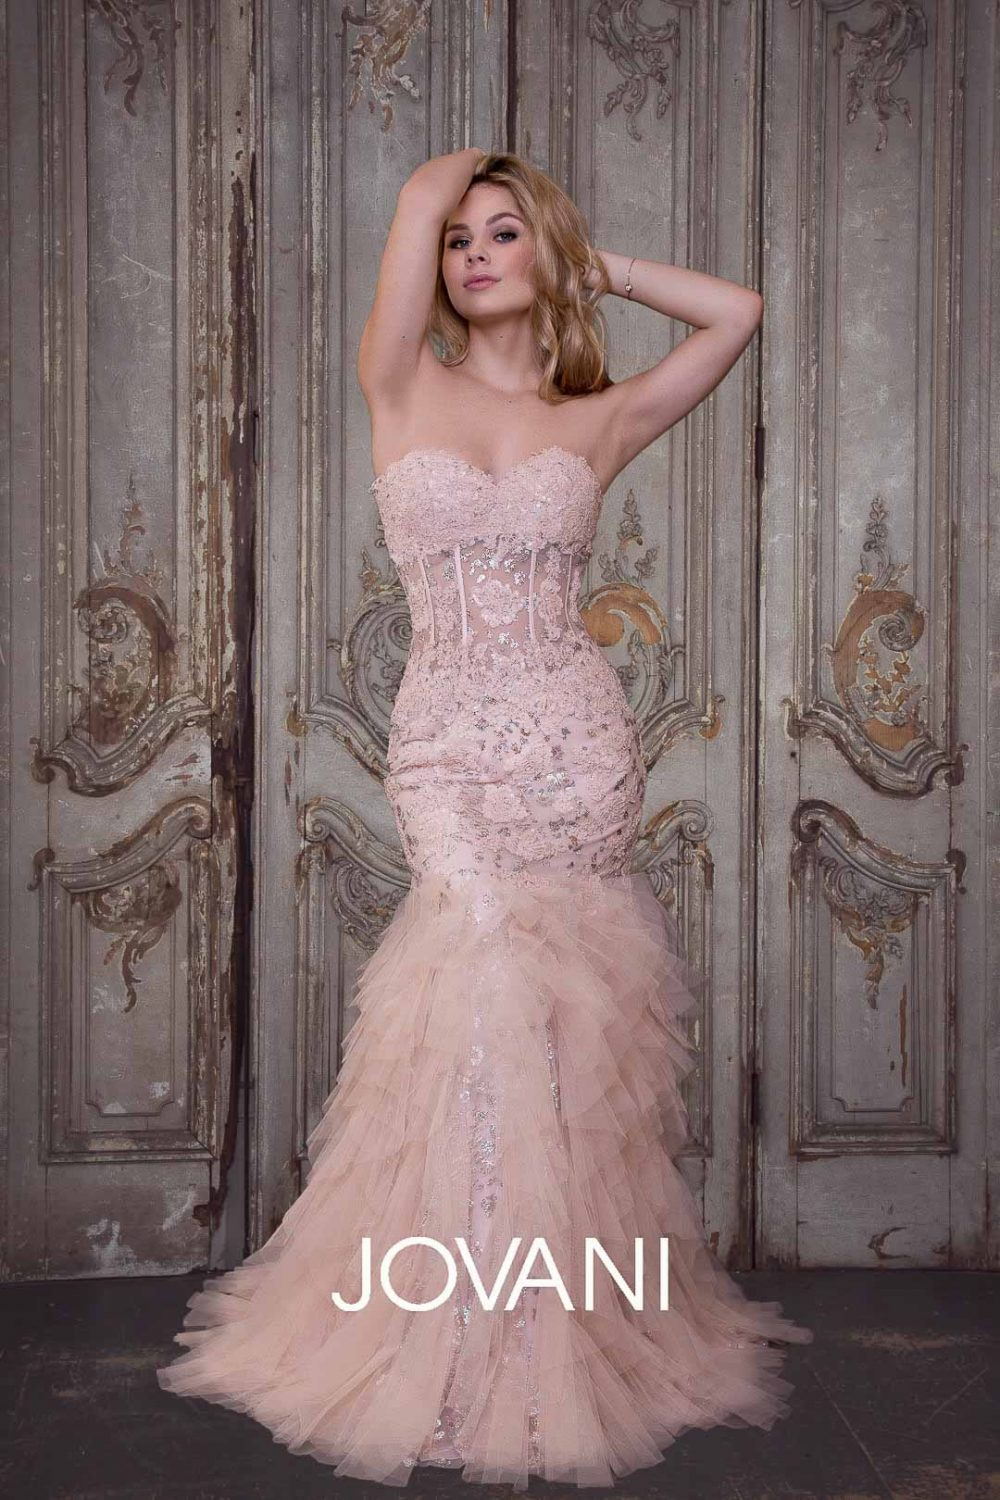 jovani-dress-photography-london